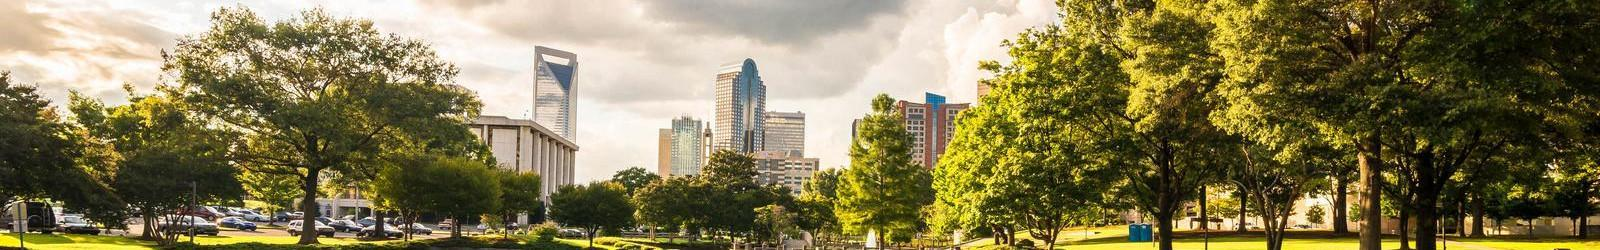 Therapists in Charlotte, North Carolina: psychologists, counselors, and mental health specialists